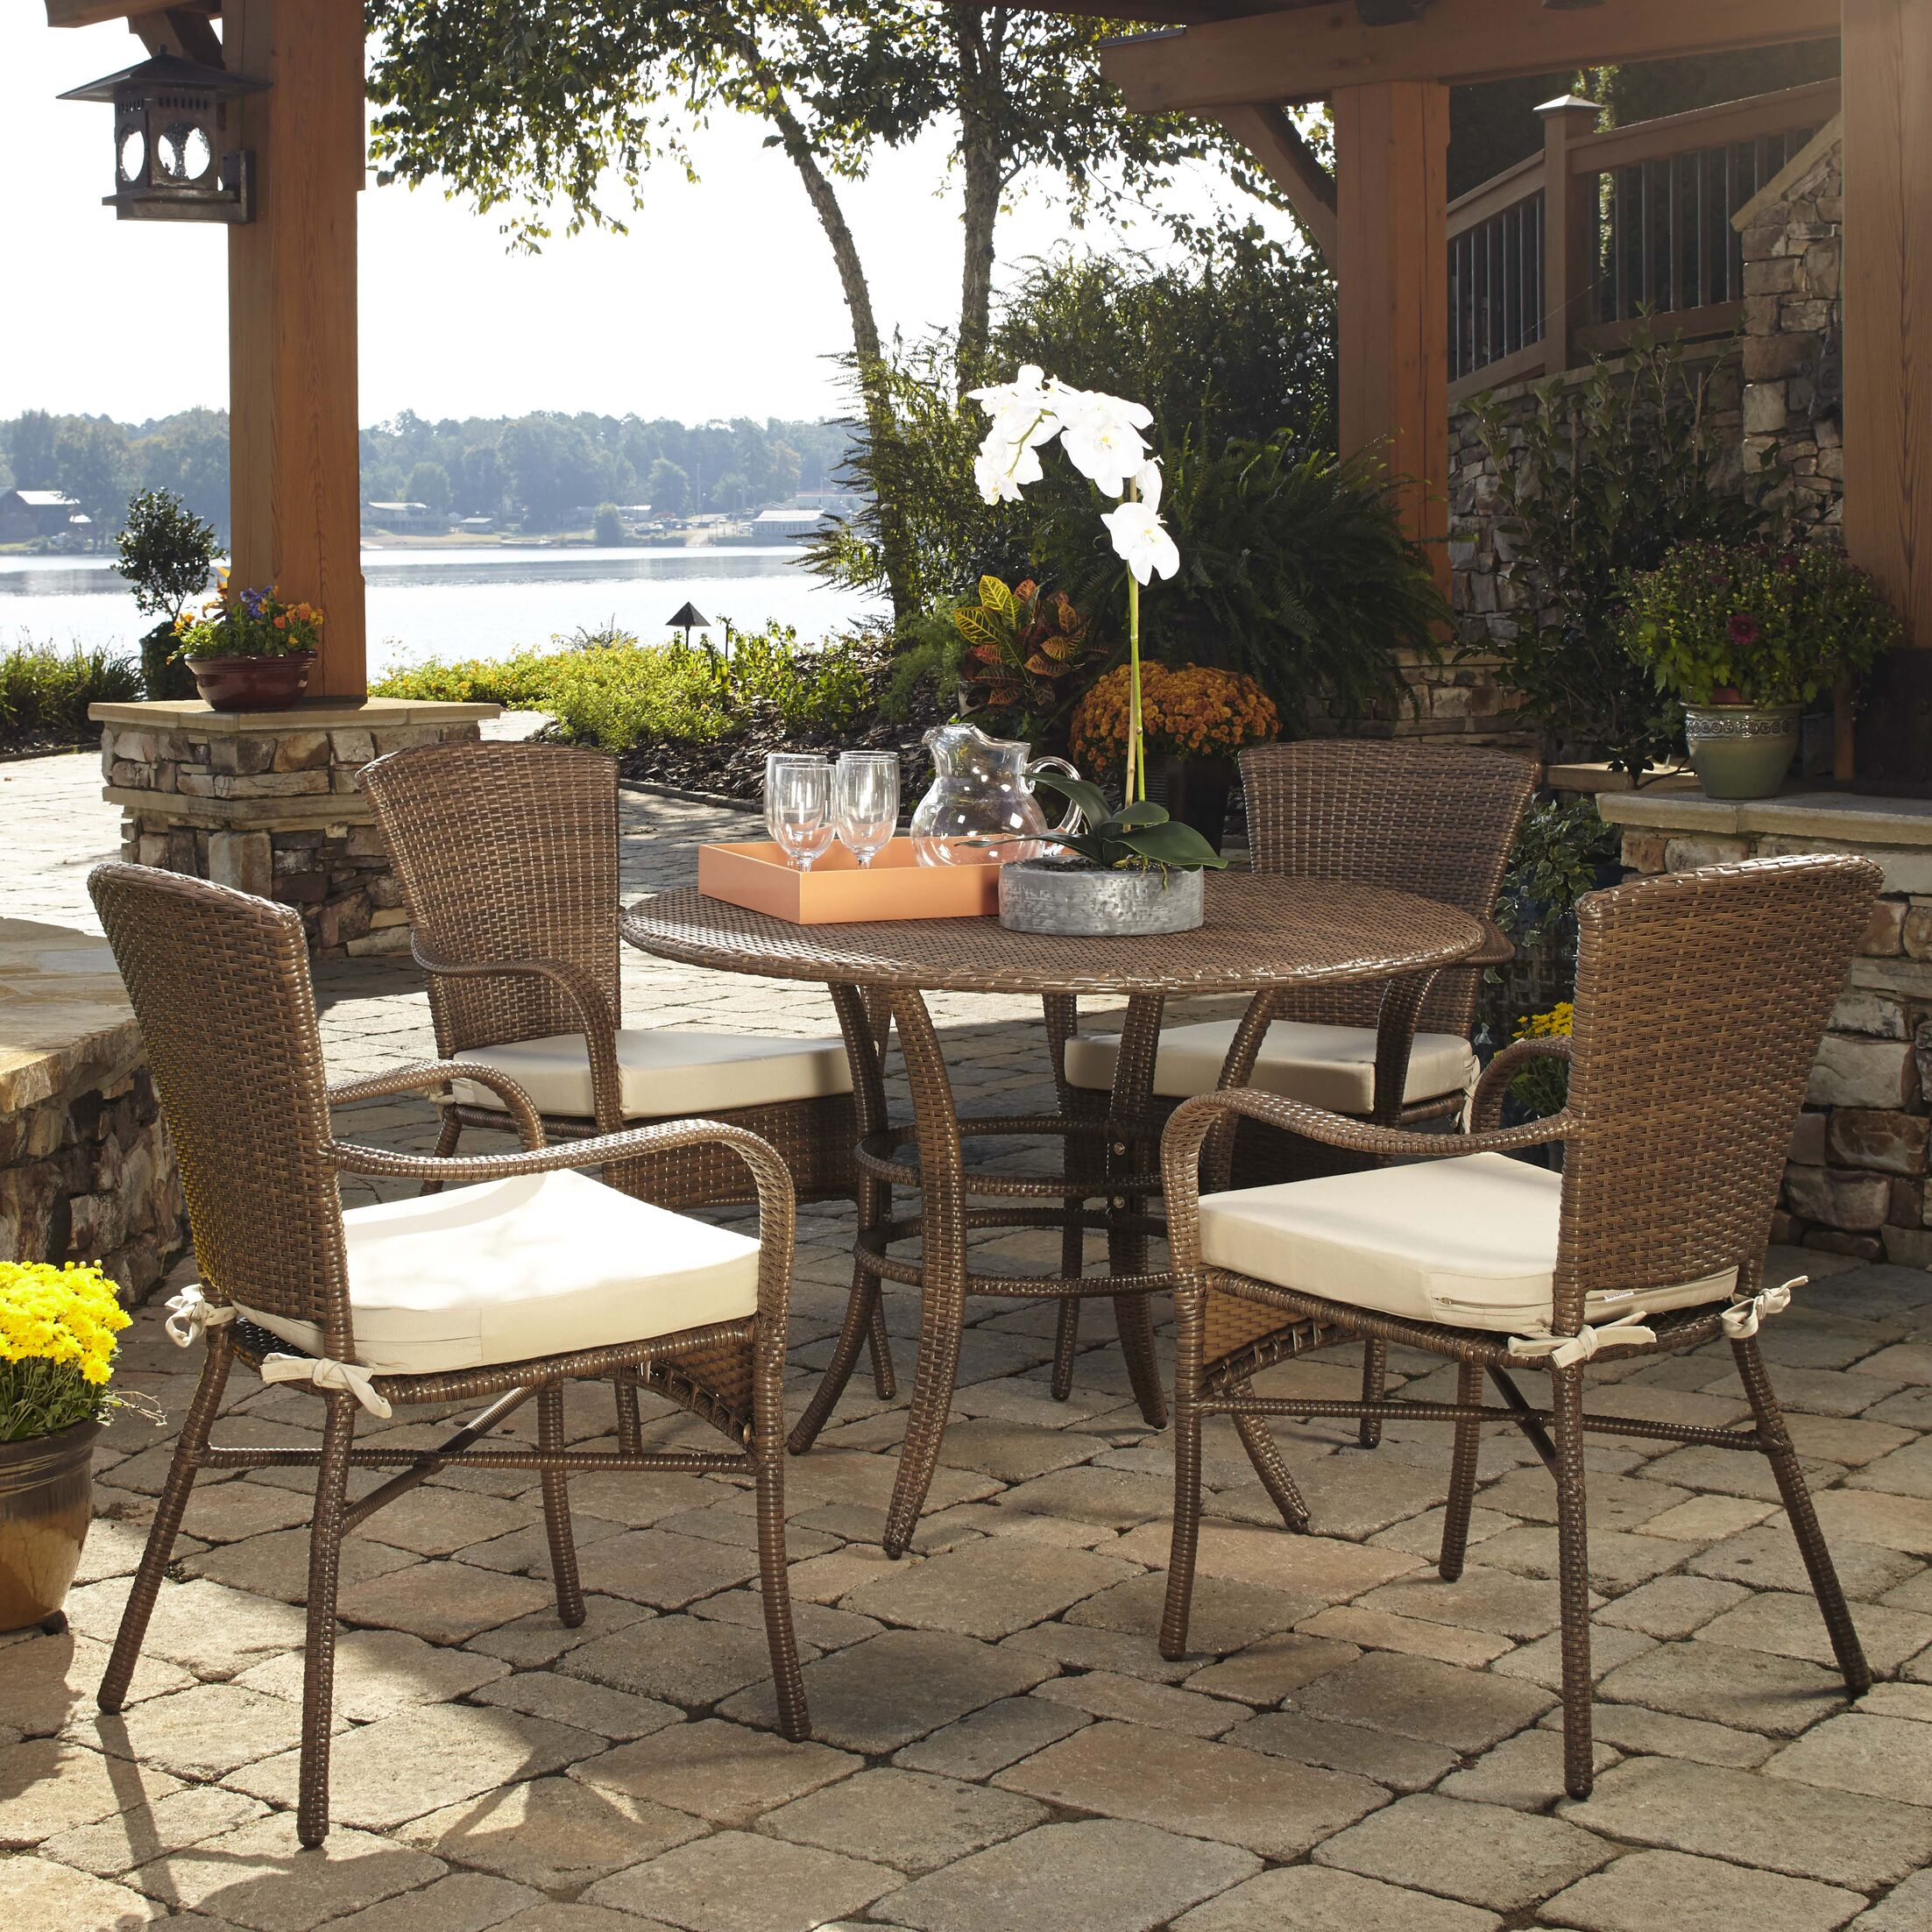 Key Biscayne 5 Piece Dining Set with Cushions Color: Spectrum Almond